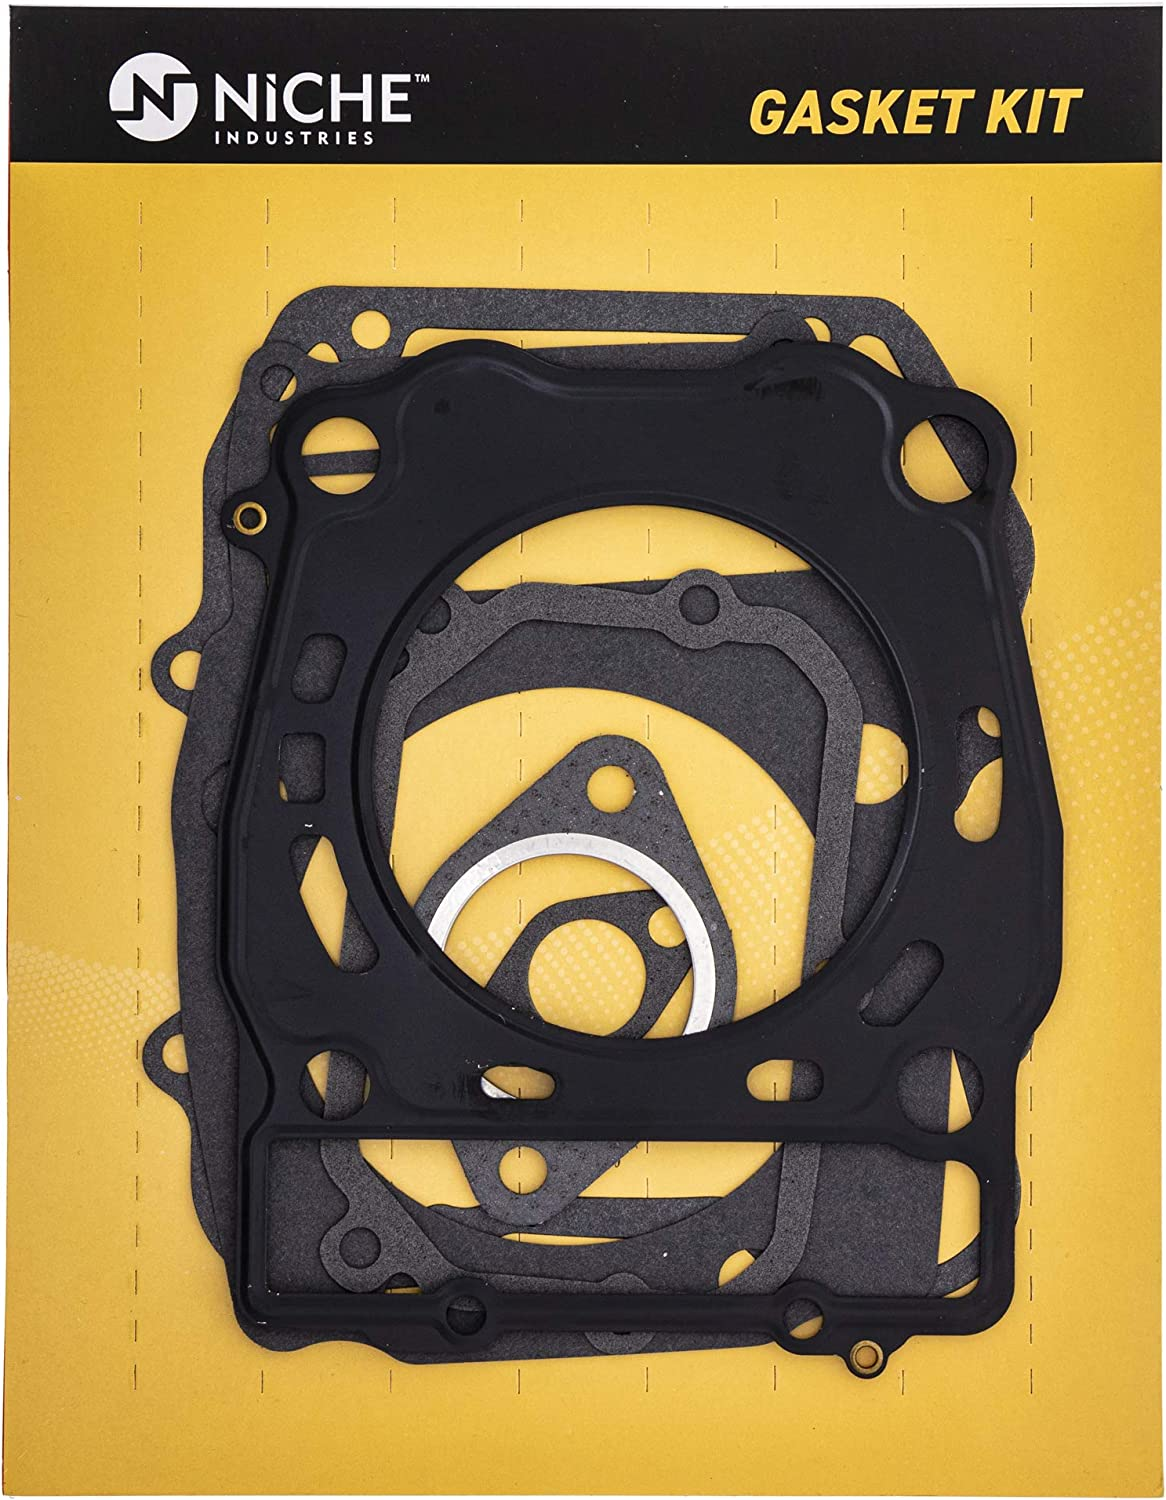 NICHE Cylinder Head and Base Gasket Kit Store 1996-2014 For Combo Max 57% OFF Set